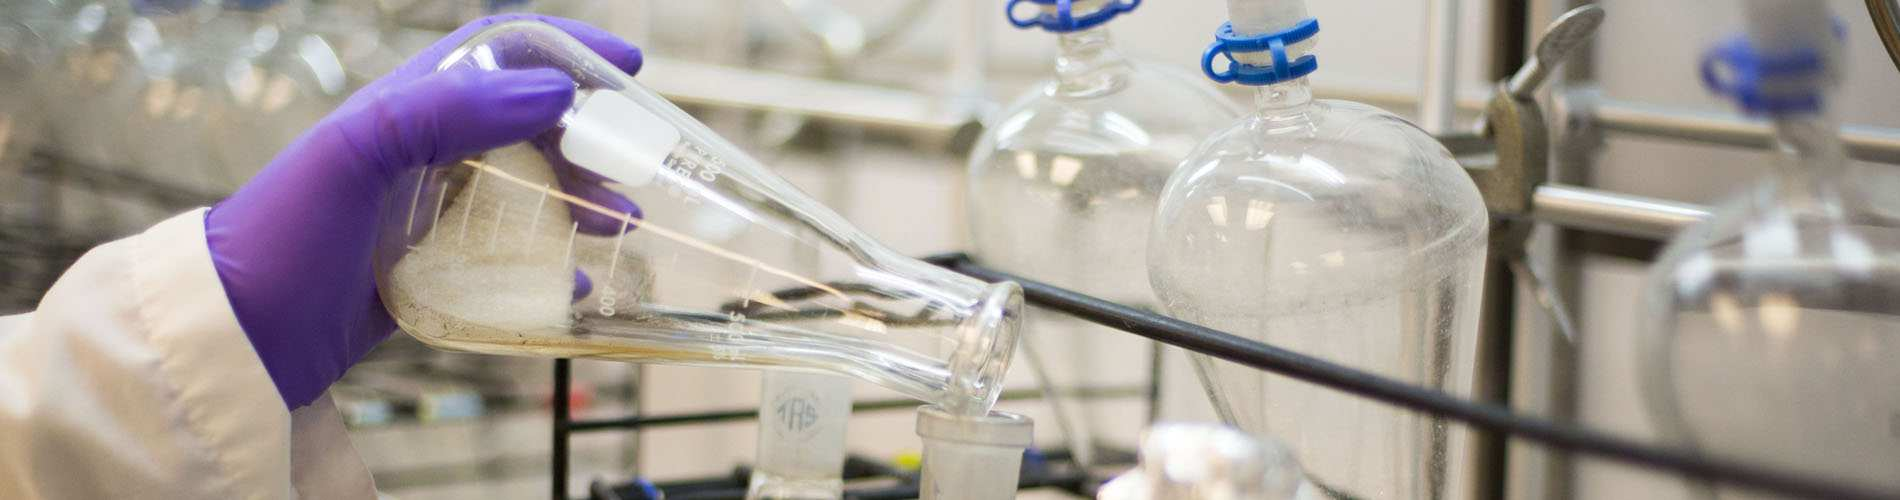 lab equipment in a lab